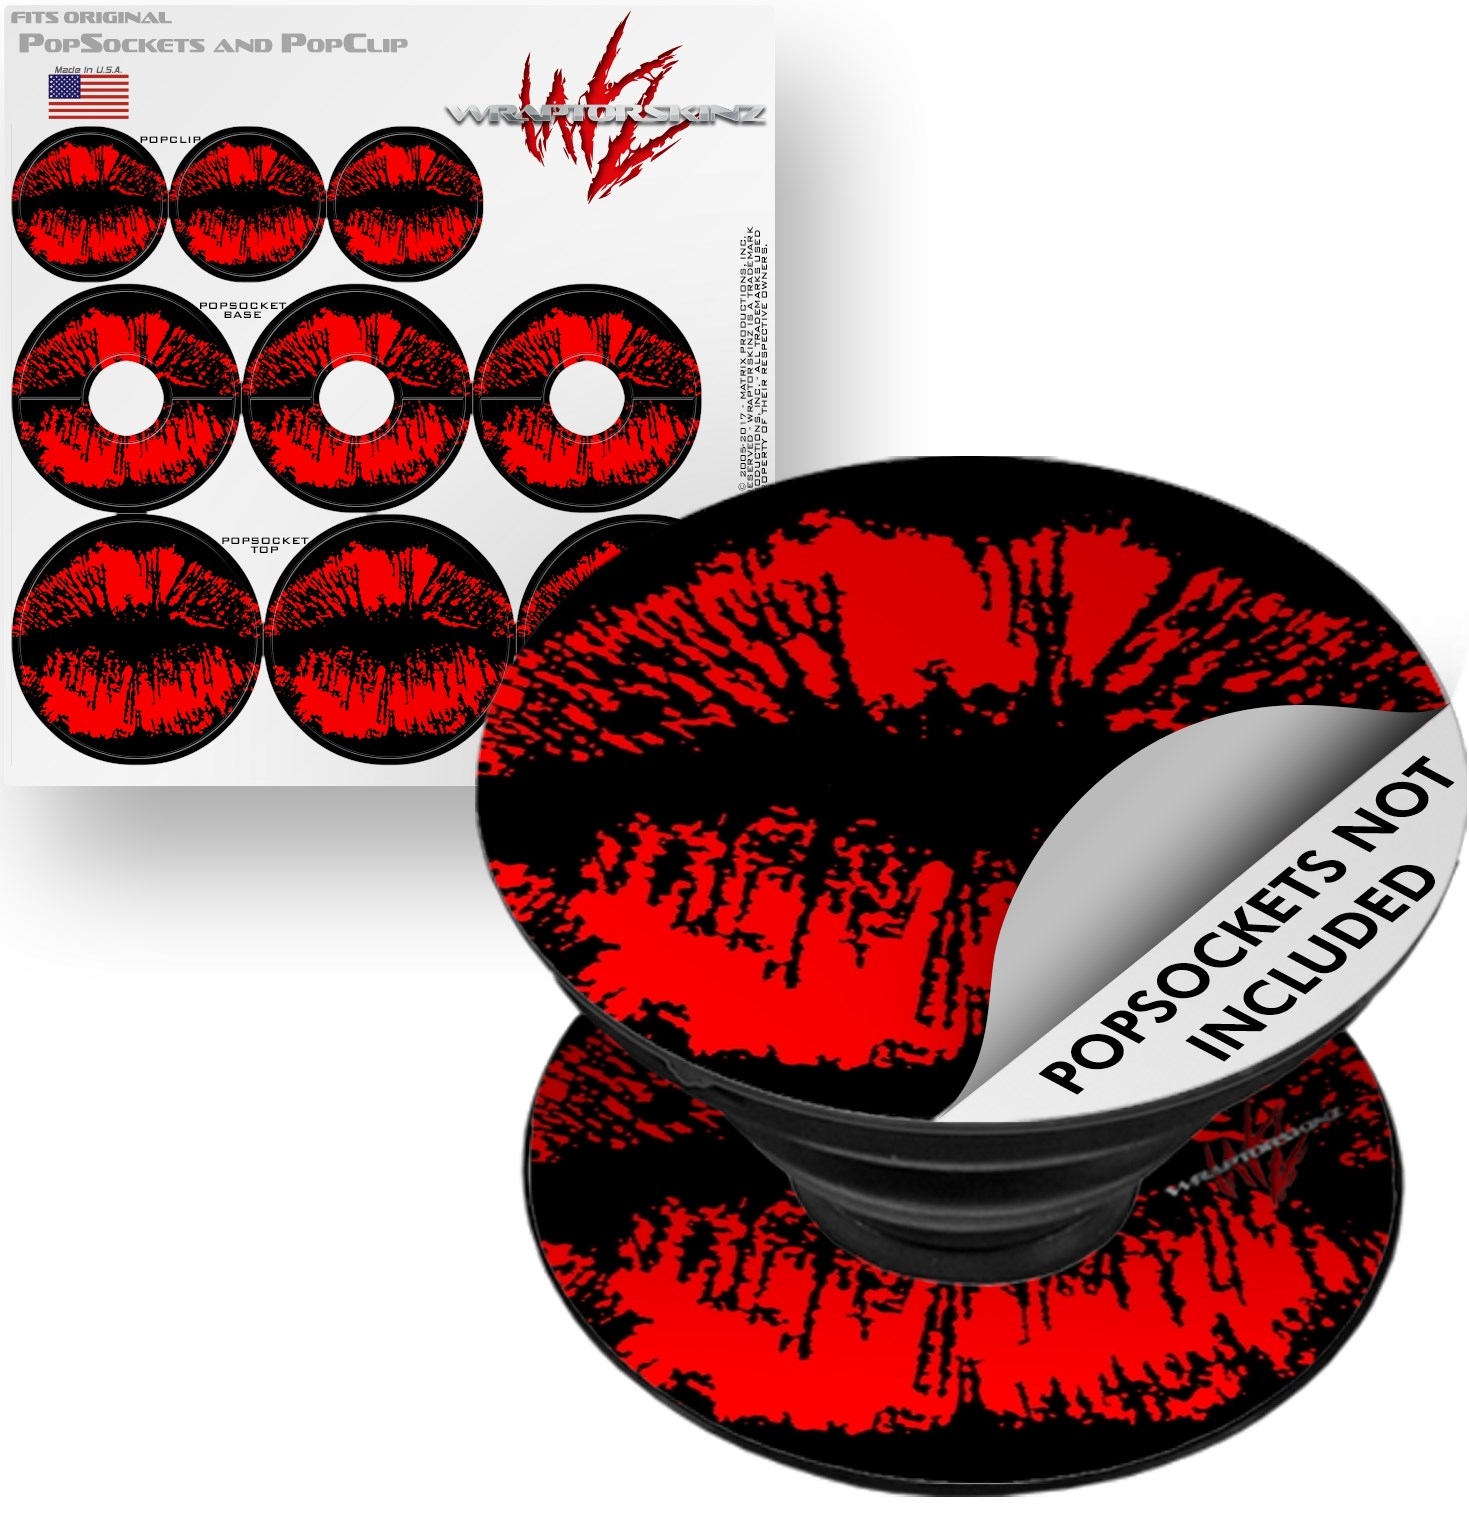 Decal Style Vinyl Skin Wrap 3 Pack for PopSockets Big Kiss Lips Red on Black (POPSOCKET NOT INCLUDED) by WraptorSkinz